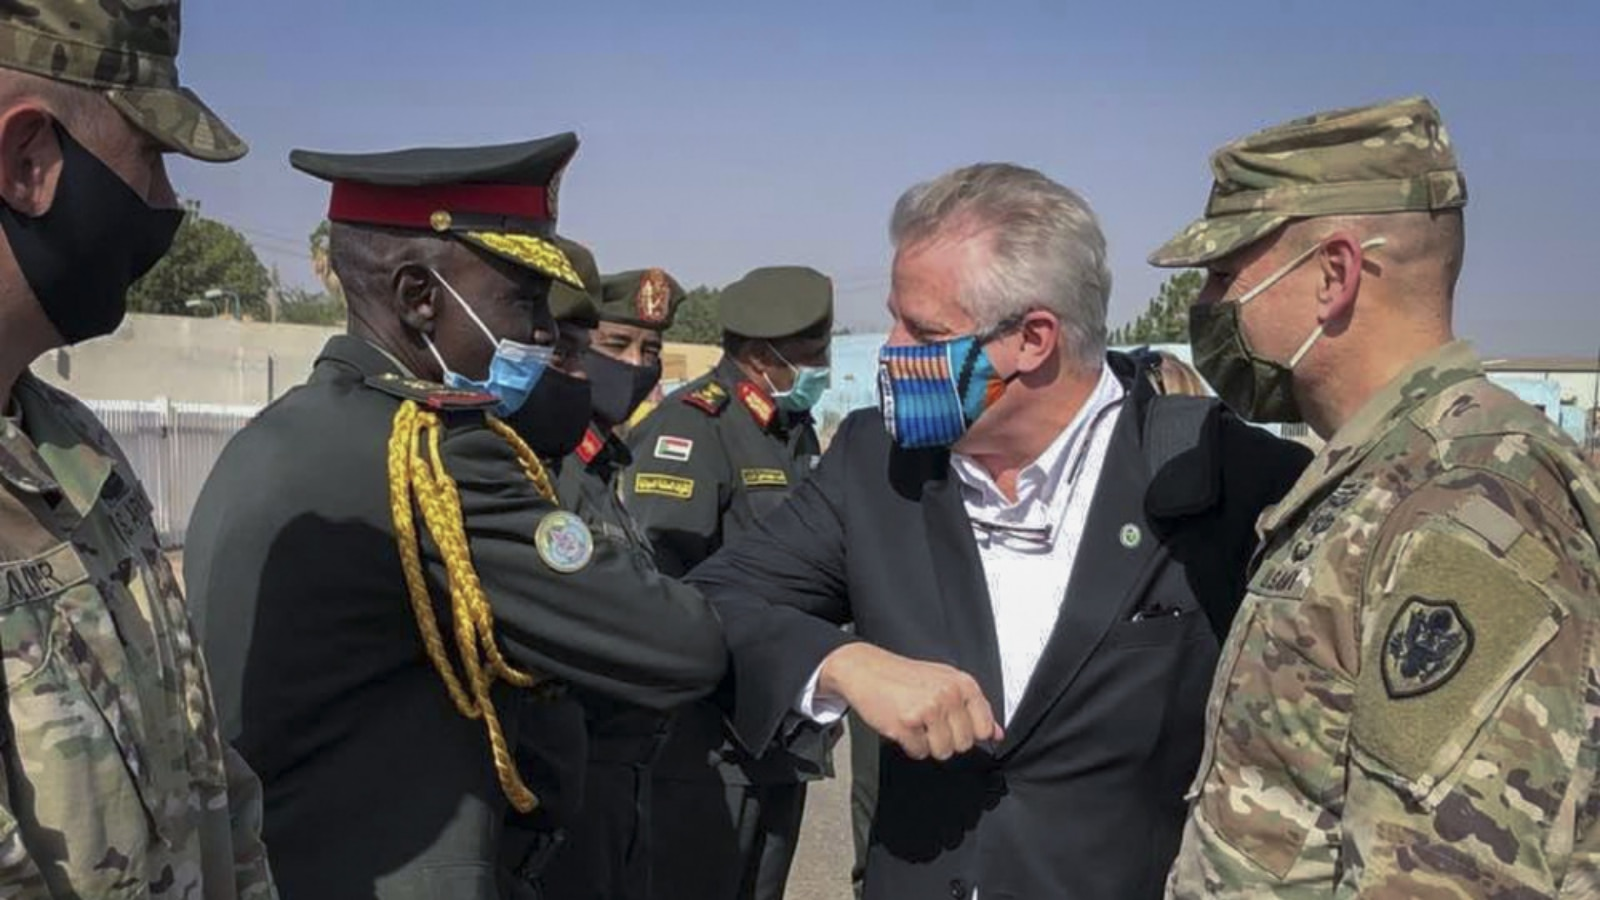 Ambassador Andrew Young, Deputy to the Commander for Civil-Military Engagement, is greeted upon arrival in Sudan. (Photo courtesy of AFRICOM)